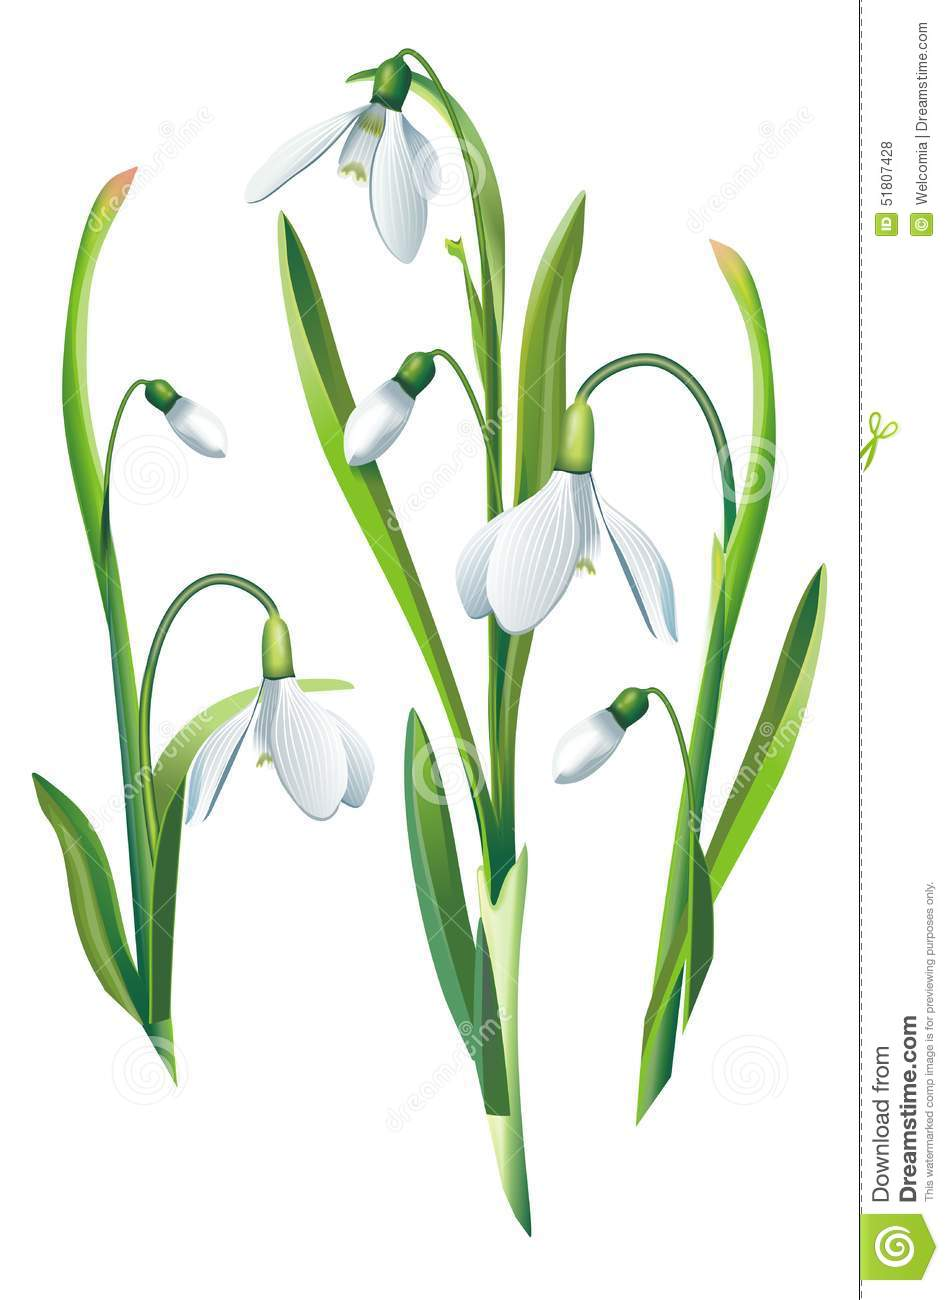 Fleurs De Perce Neige D Isolement Illustration Stock Illustration